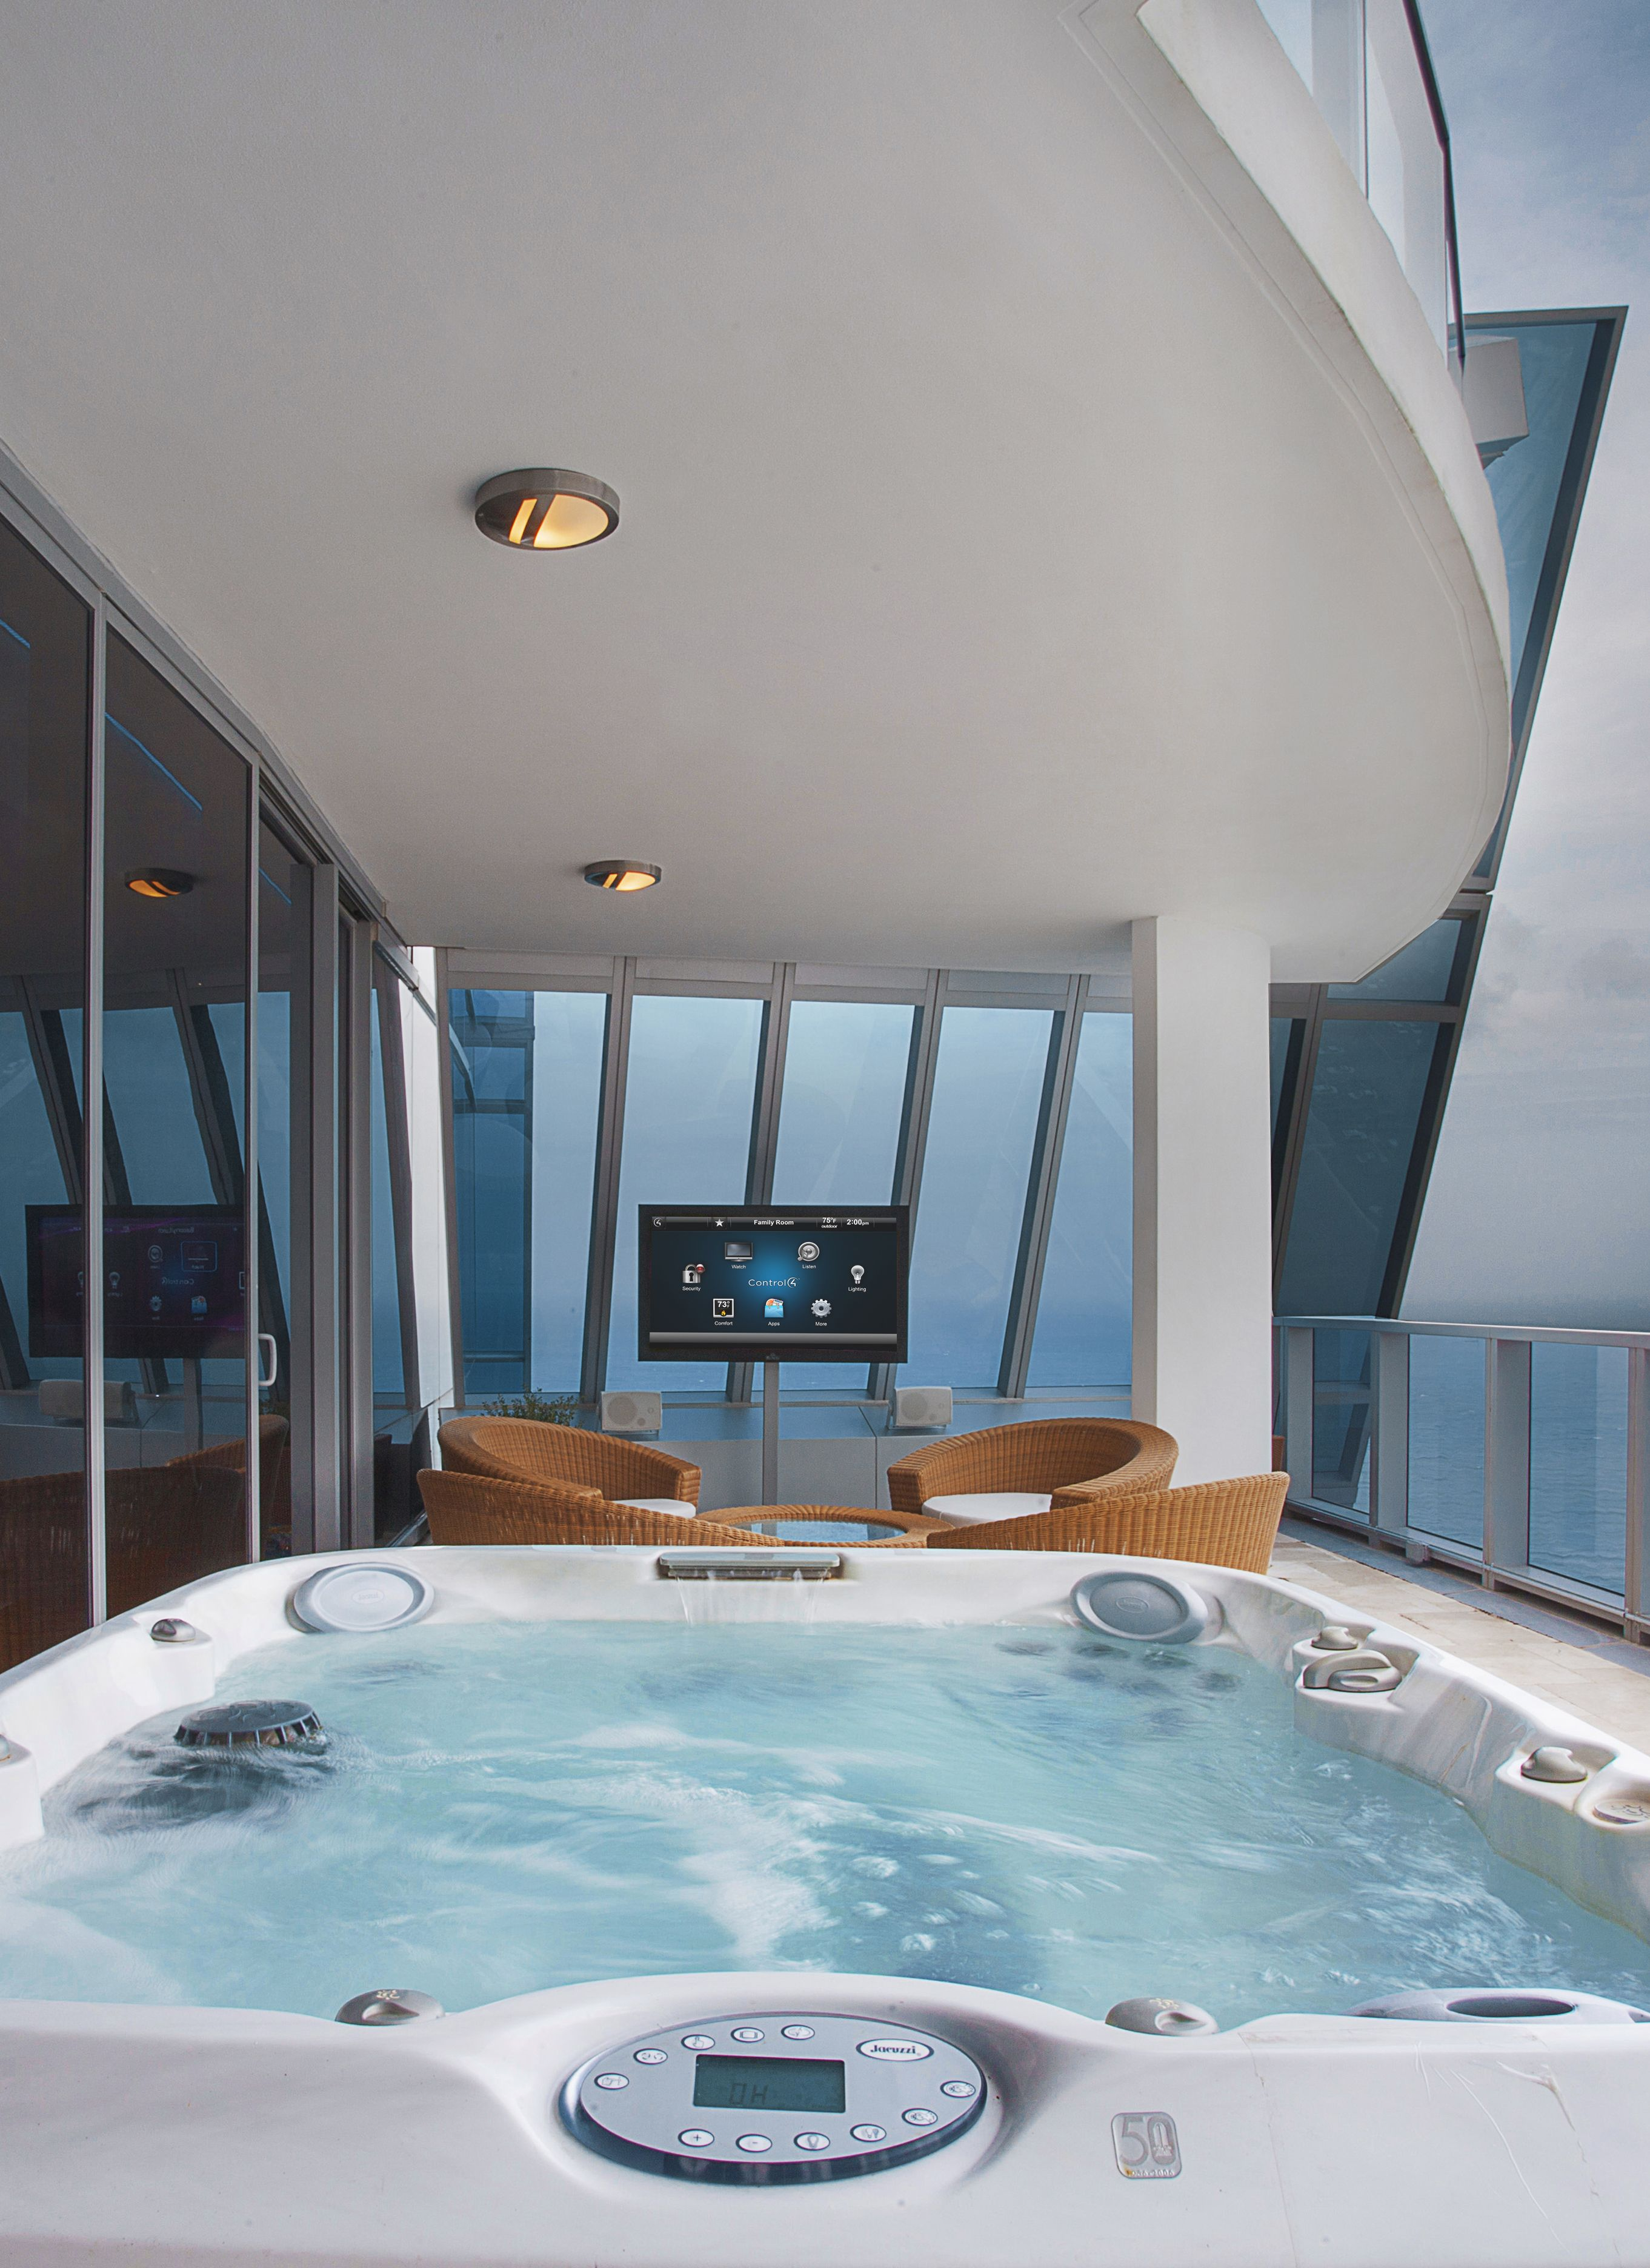 With the press of a button your hot tub, TV, and lighting can all ...